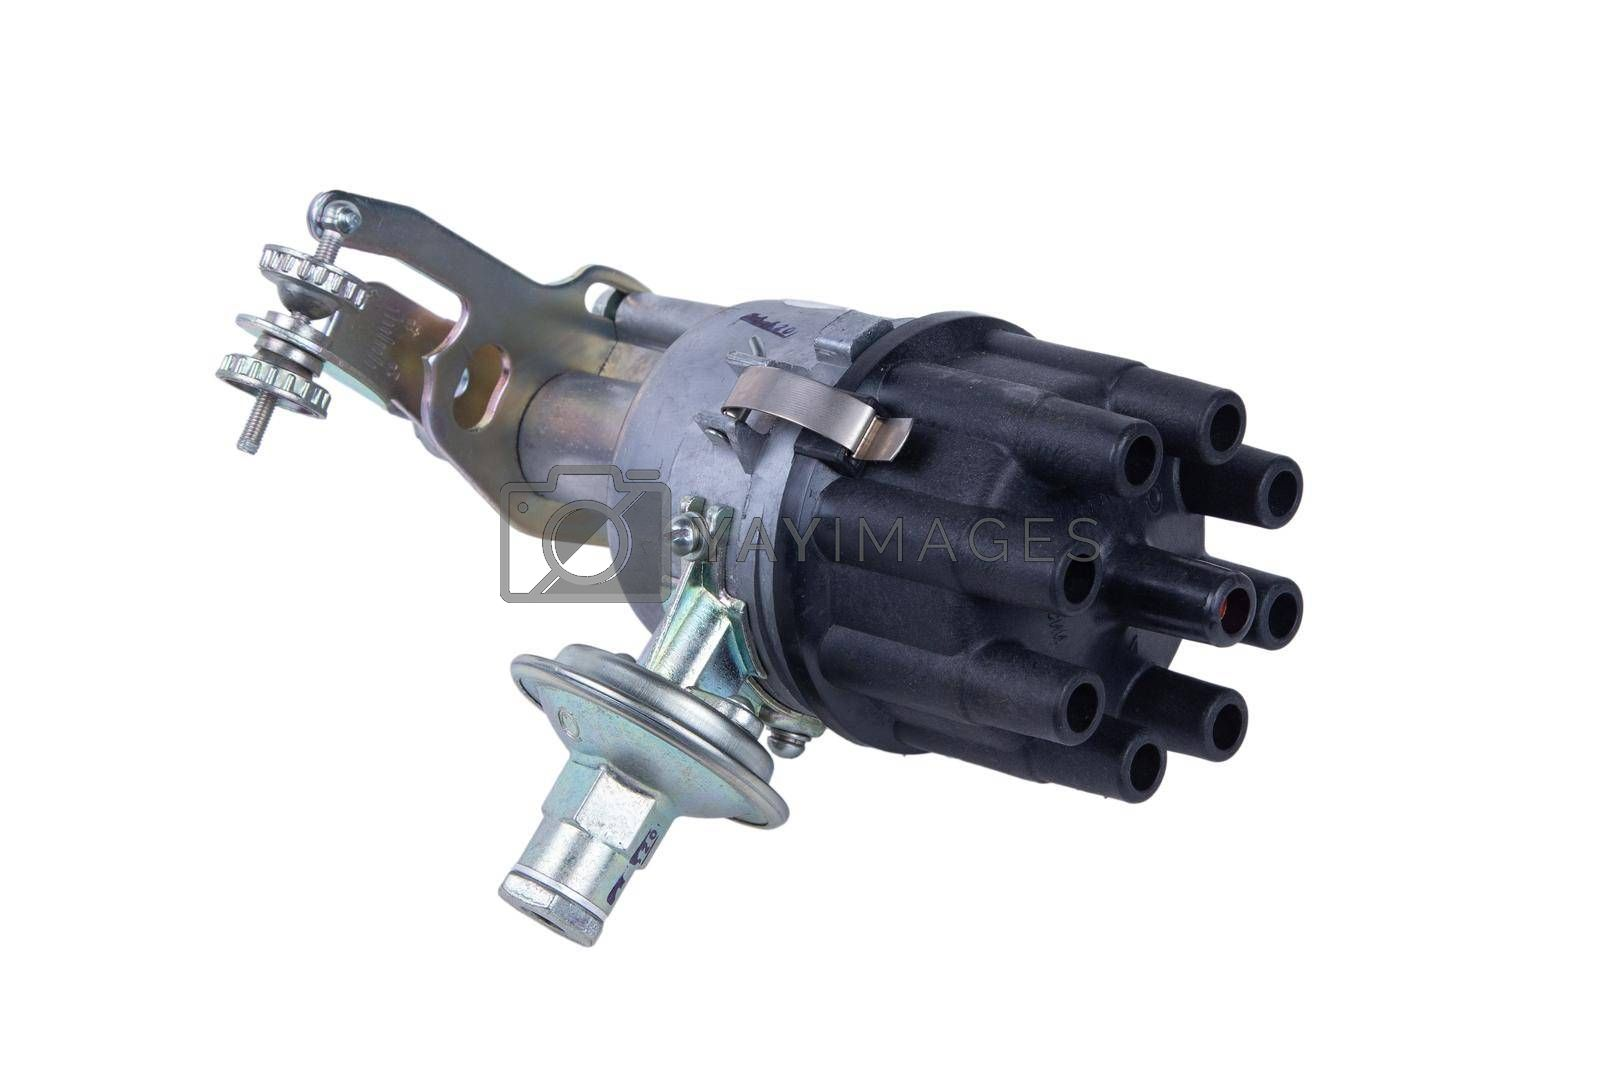 new truck ignition distributor on white background